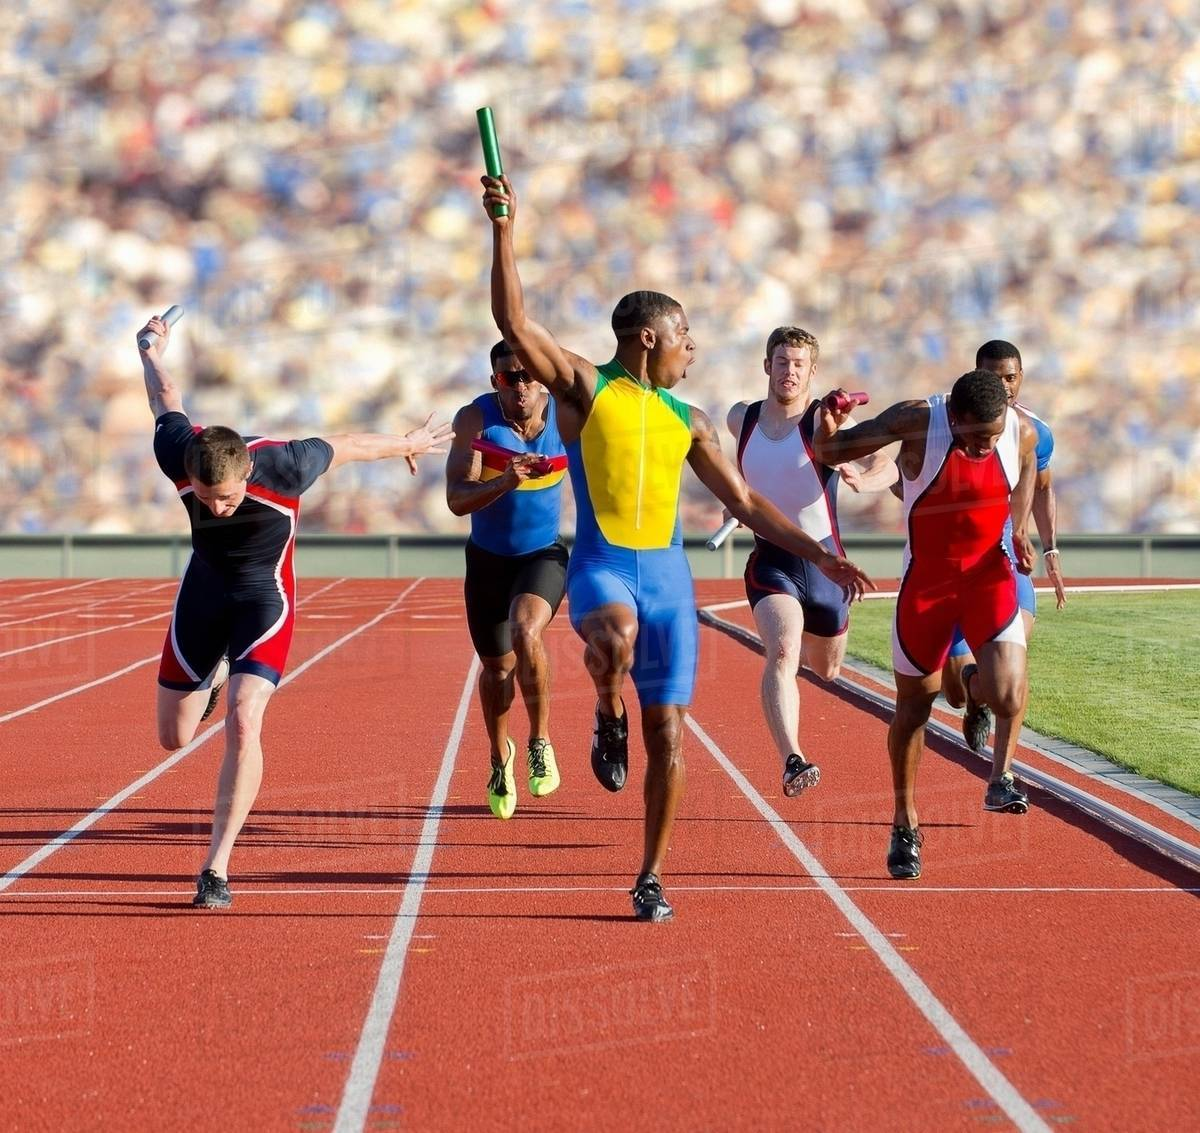 Six Athletes Running Relay Race - Stock Photo